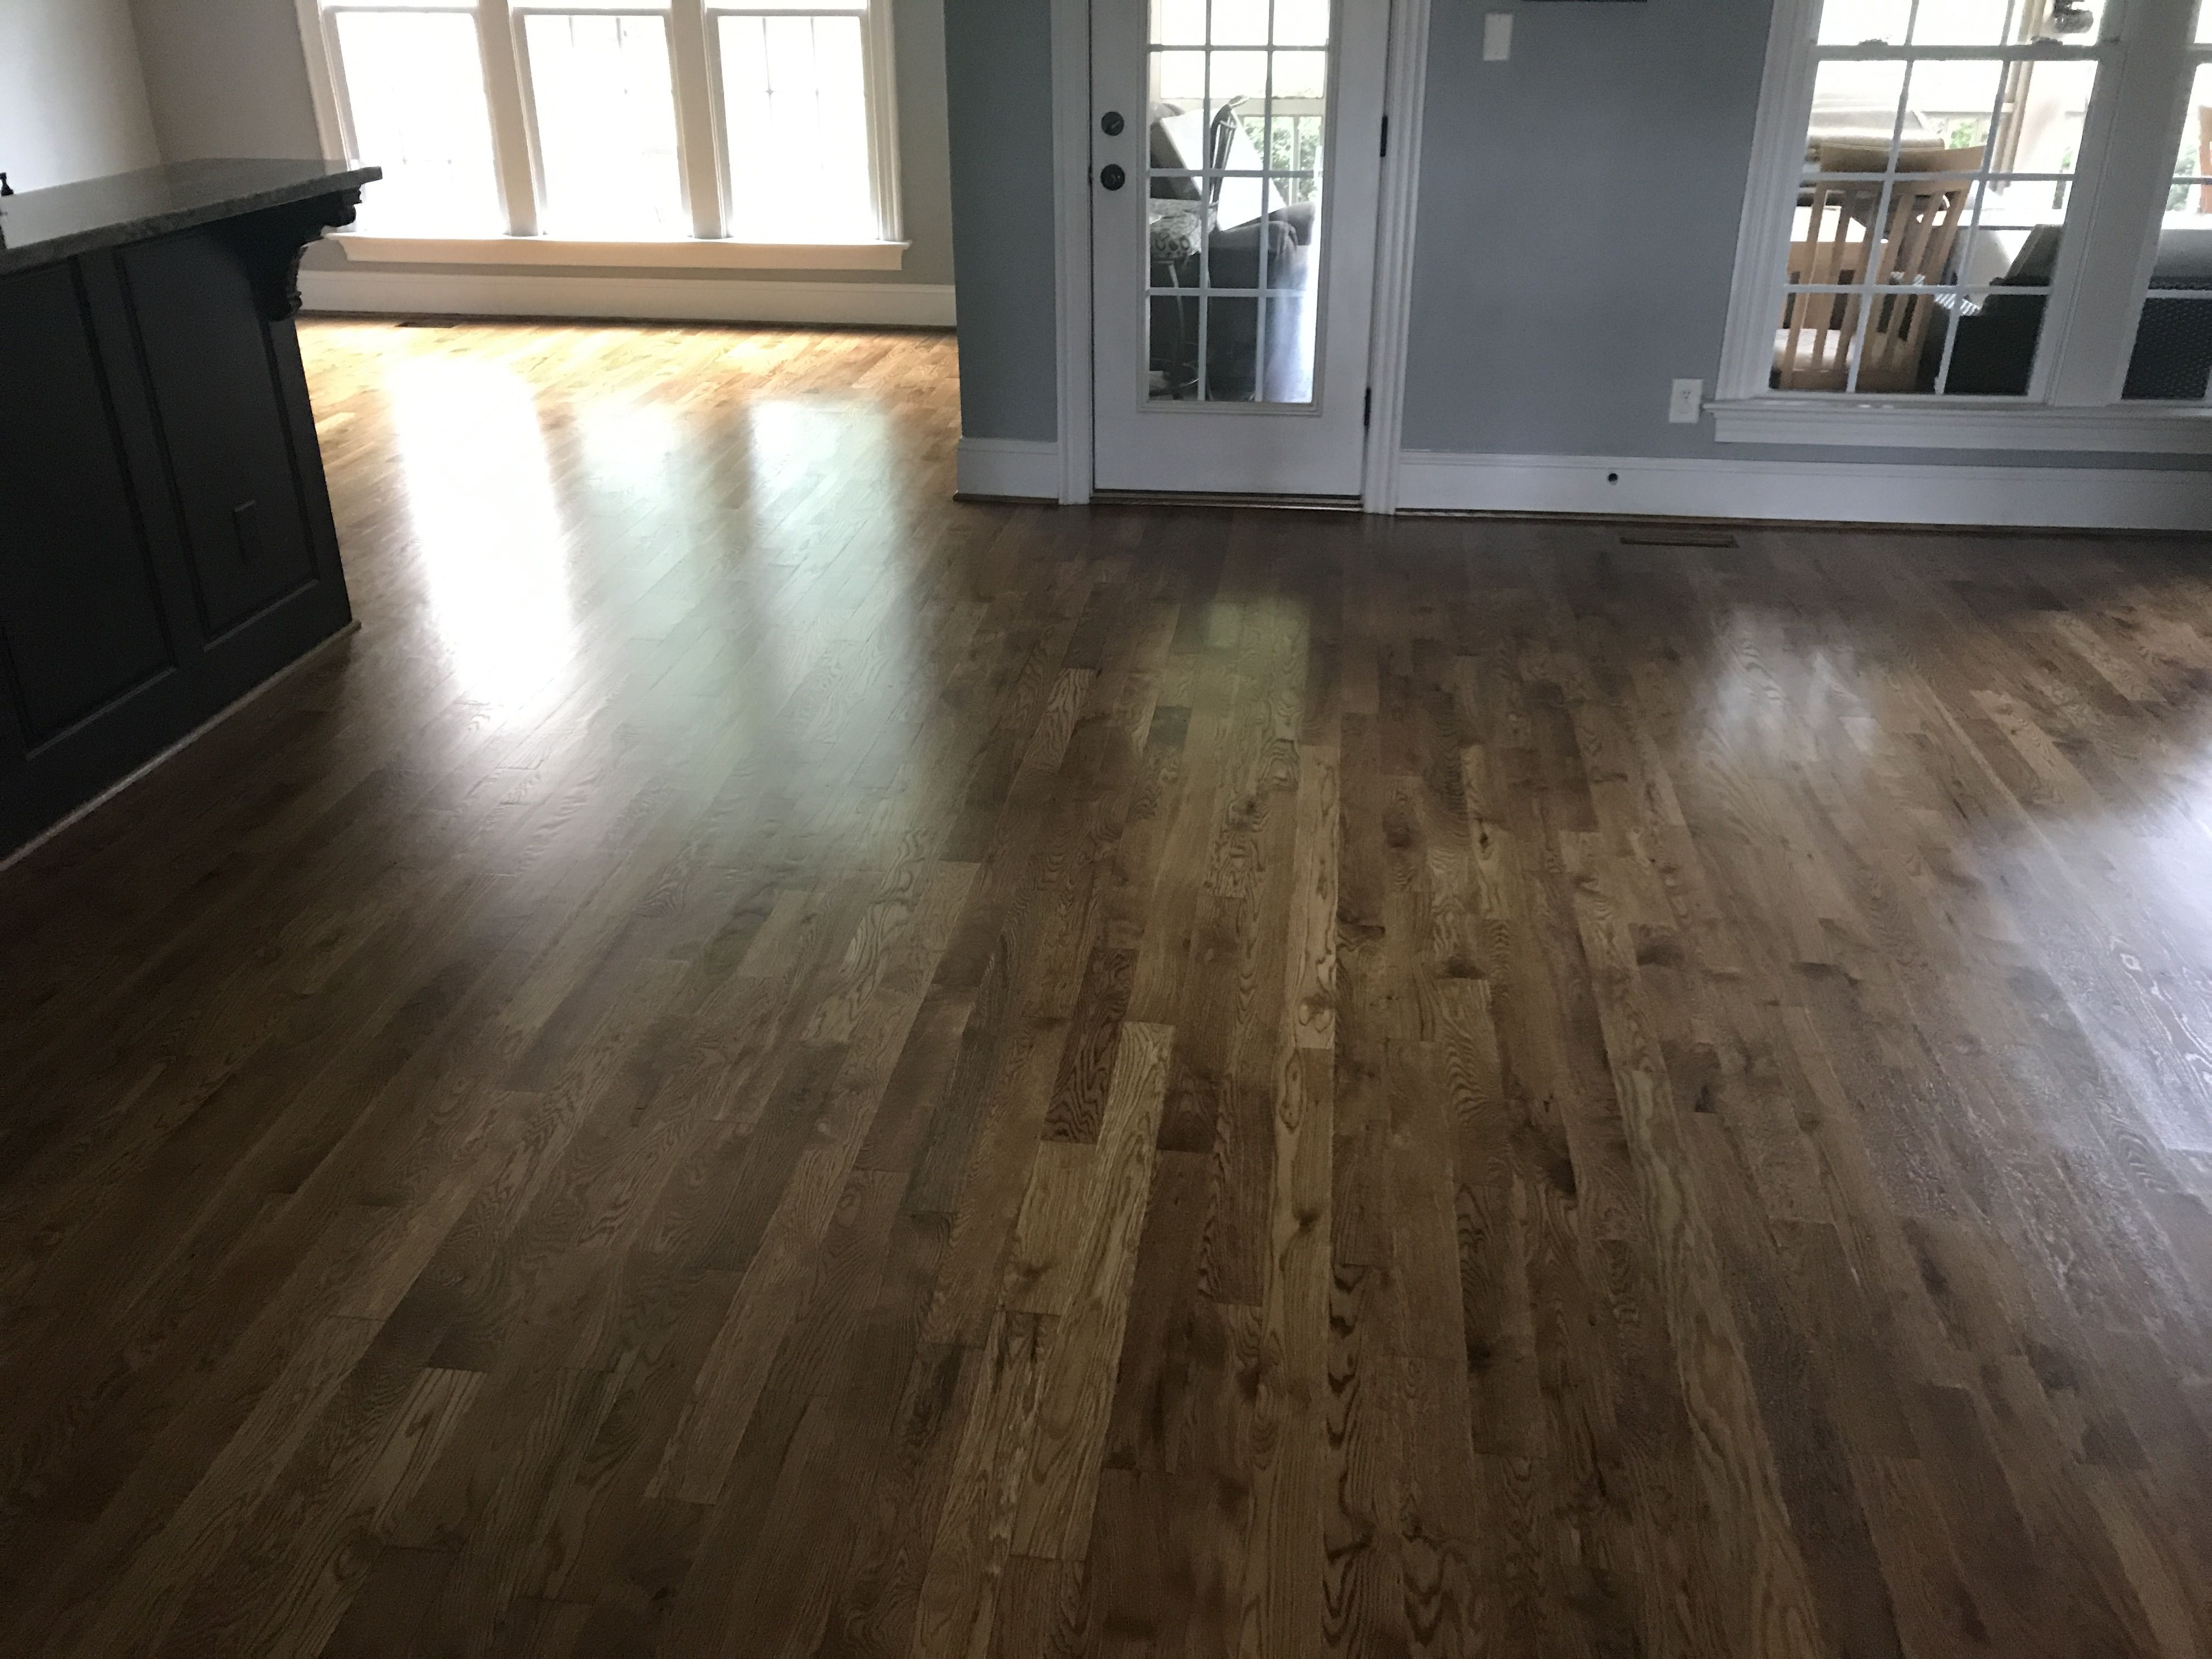 Best Pin By Floor Coverings Cary Nc On Flooring In Cary 400 x 300